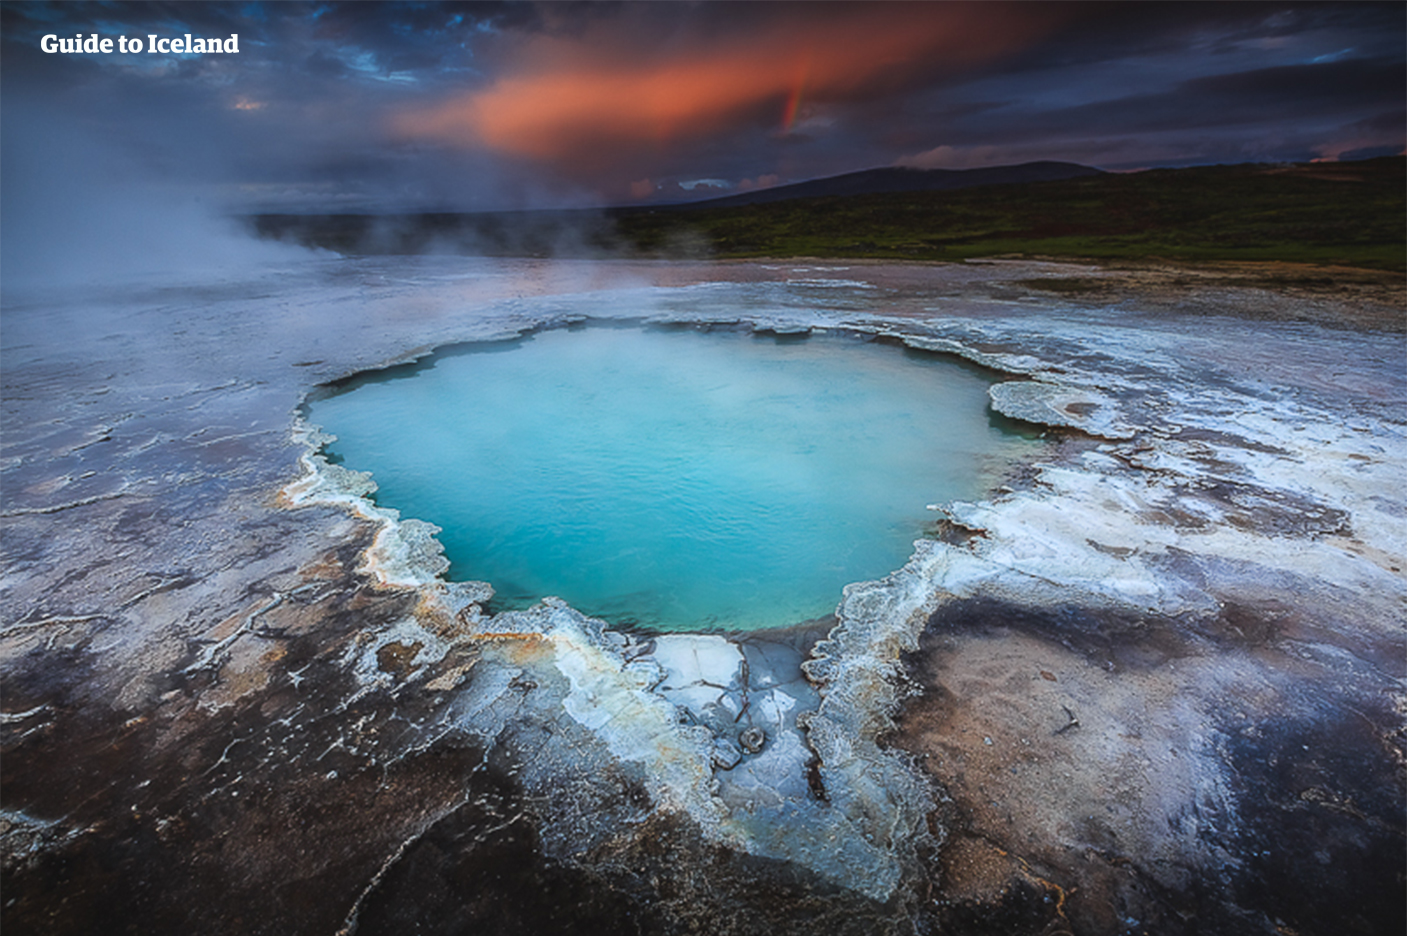 10 Day Summer Package | Guided Tour Around Iceland with Free Days in Reykjavik - day 7